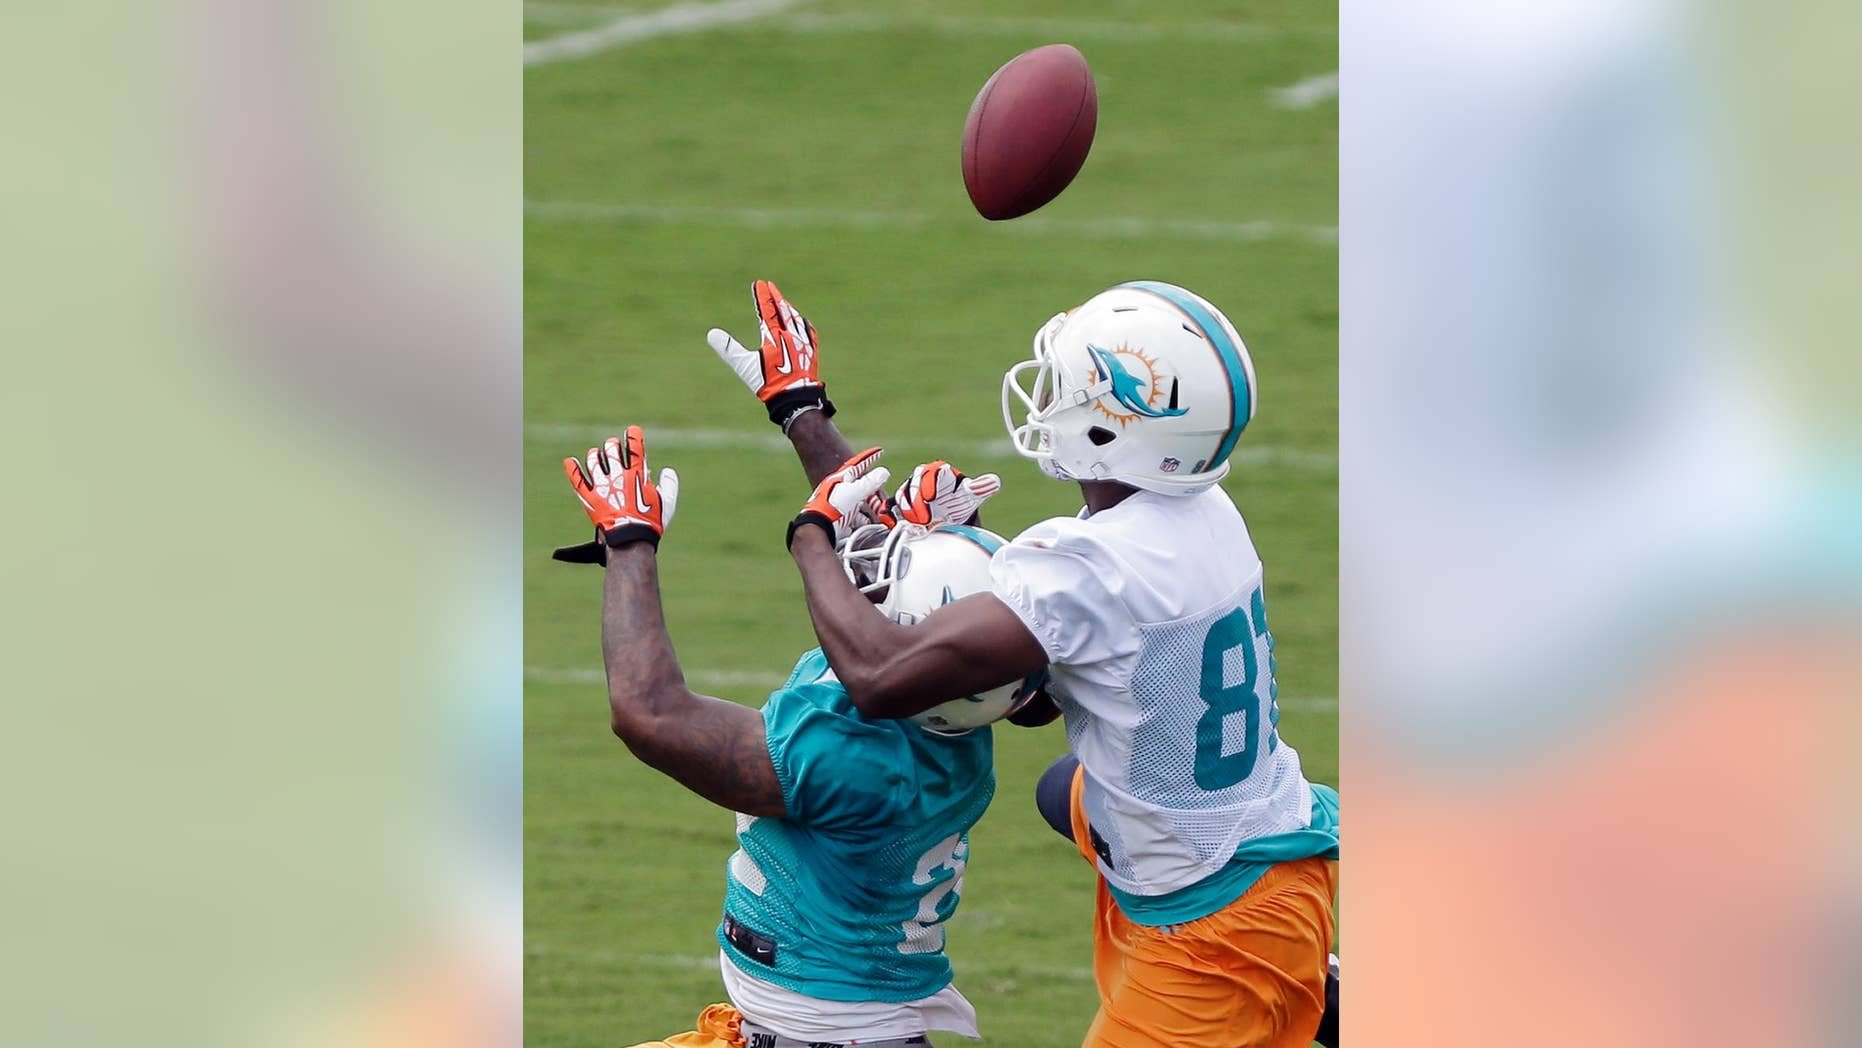 Miami Dolphins cornerback Jamar Taylor, left, breaks up a pass intended for wide receiver Stephen Williams during NFL football mini camp, Wednesday, June 18, 2014, in Davie, Fla. Taylor has pulled ahead of his teammate Will Davis by earning snaps opposite Pro Bowl cornerback Brent Grimes on the first-team defense. He appears to be fully recovered from the sports hernia injury that affected him as a rookie. (AP Photo/Wilfredo Lee)